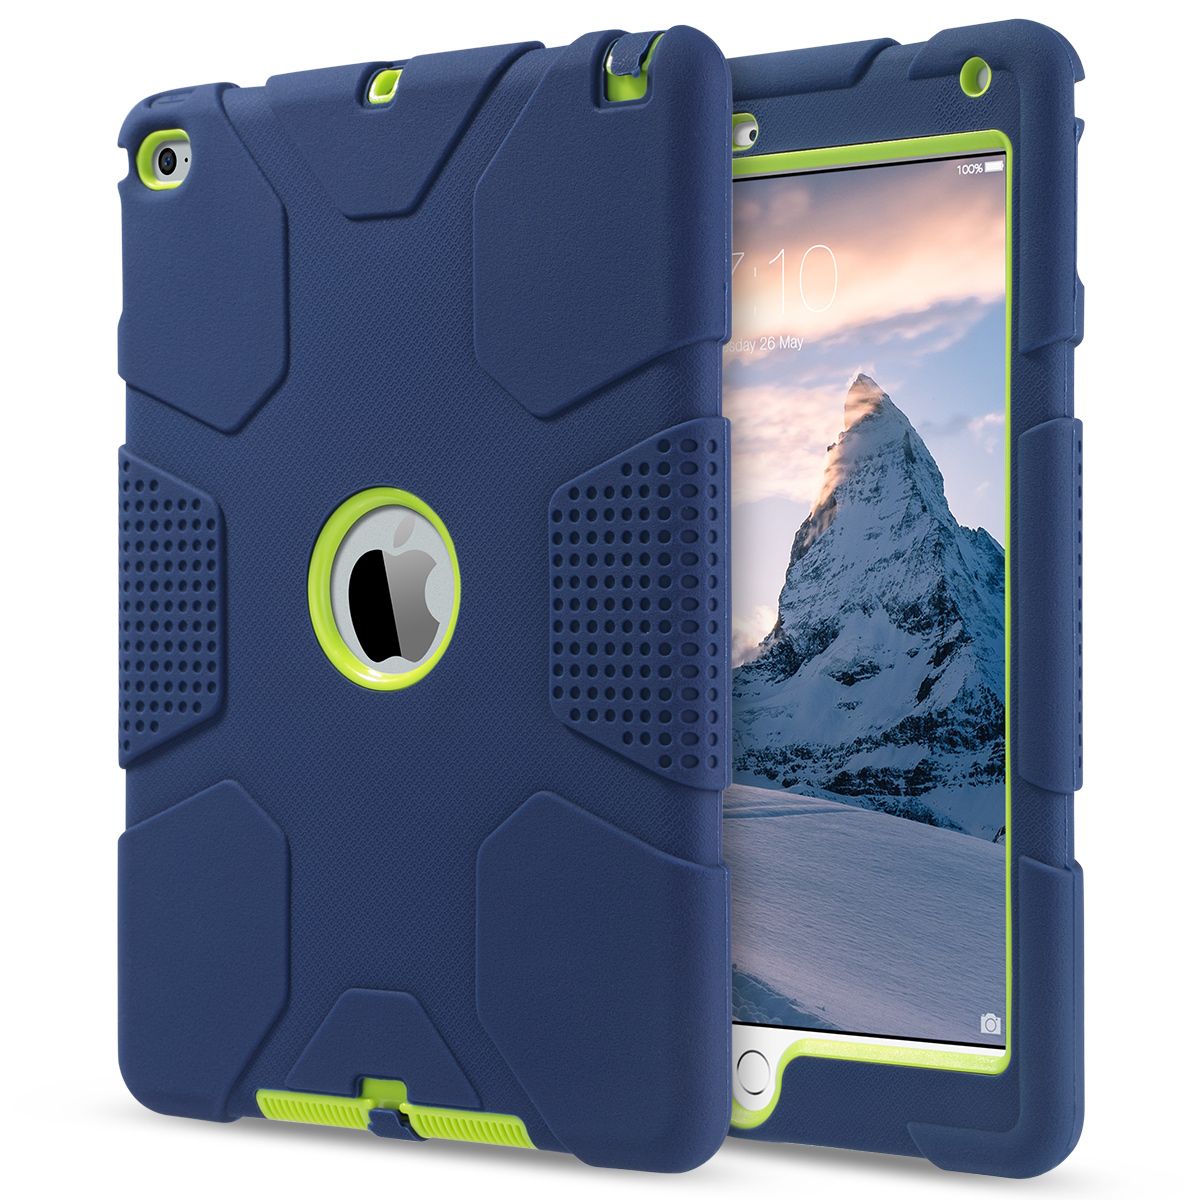 Shockproof-Heavy-Duty-Rubber-With-Hard-Stand-Case-Cover-For-Apple-iPad-Air-2 thumbnail 31